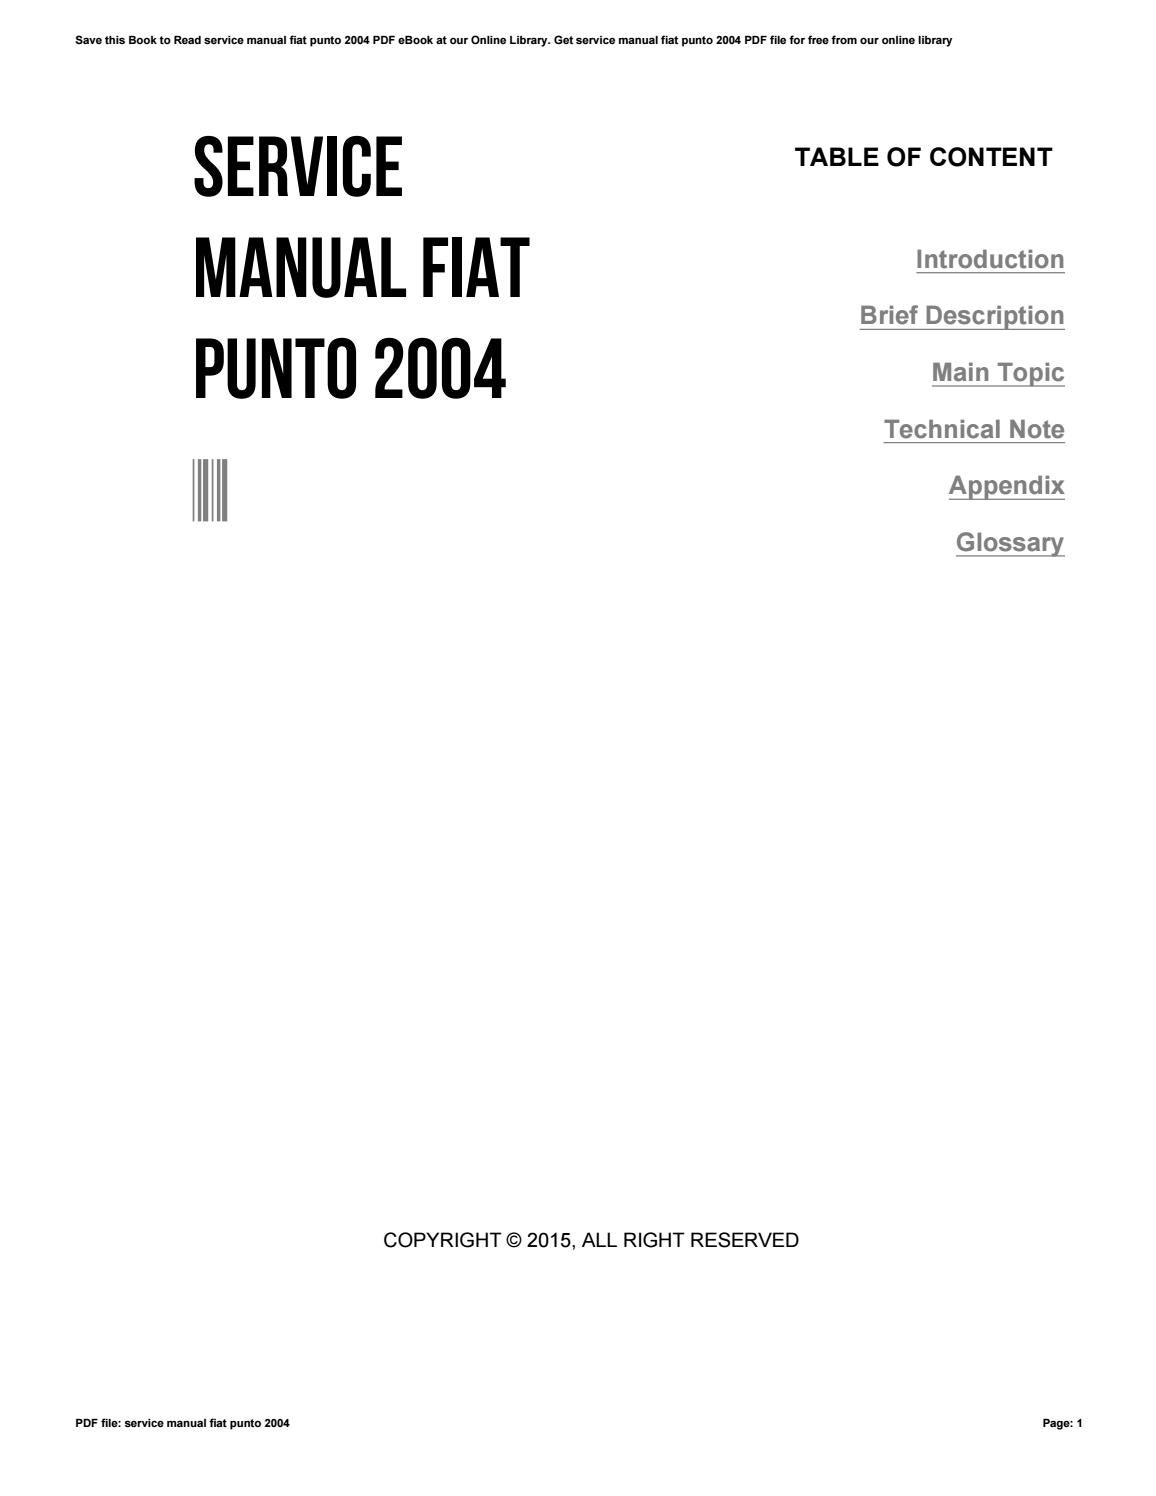 fiat punto owners manual 2015 ebook